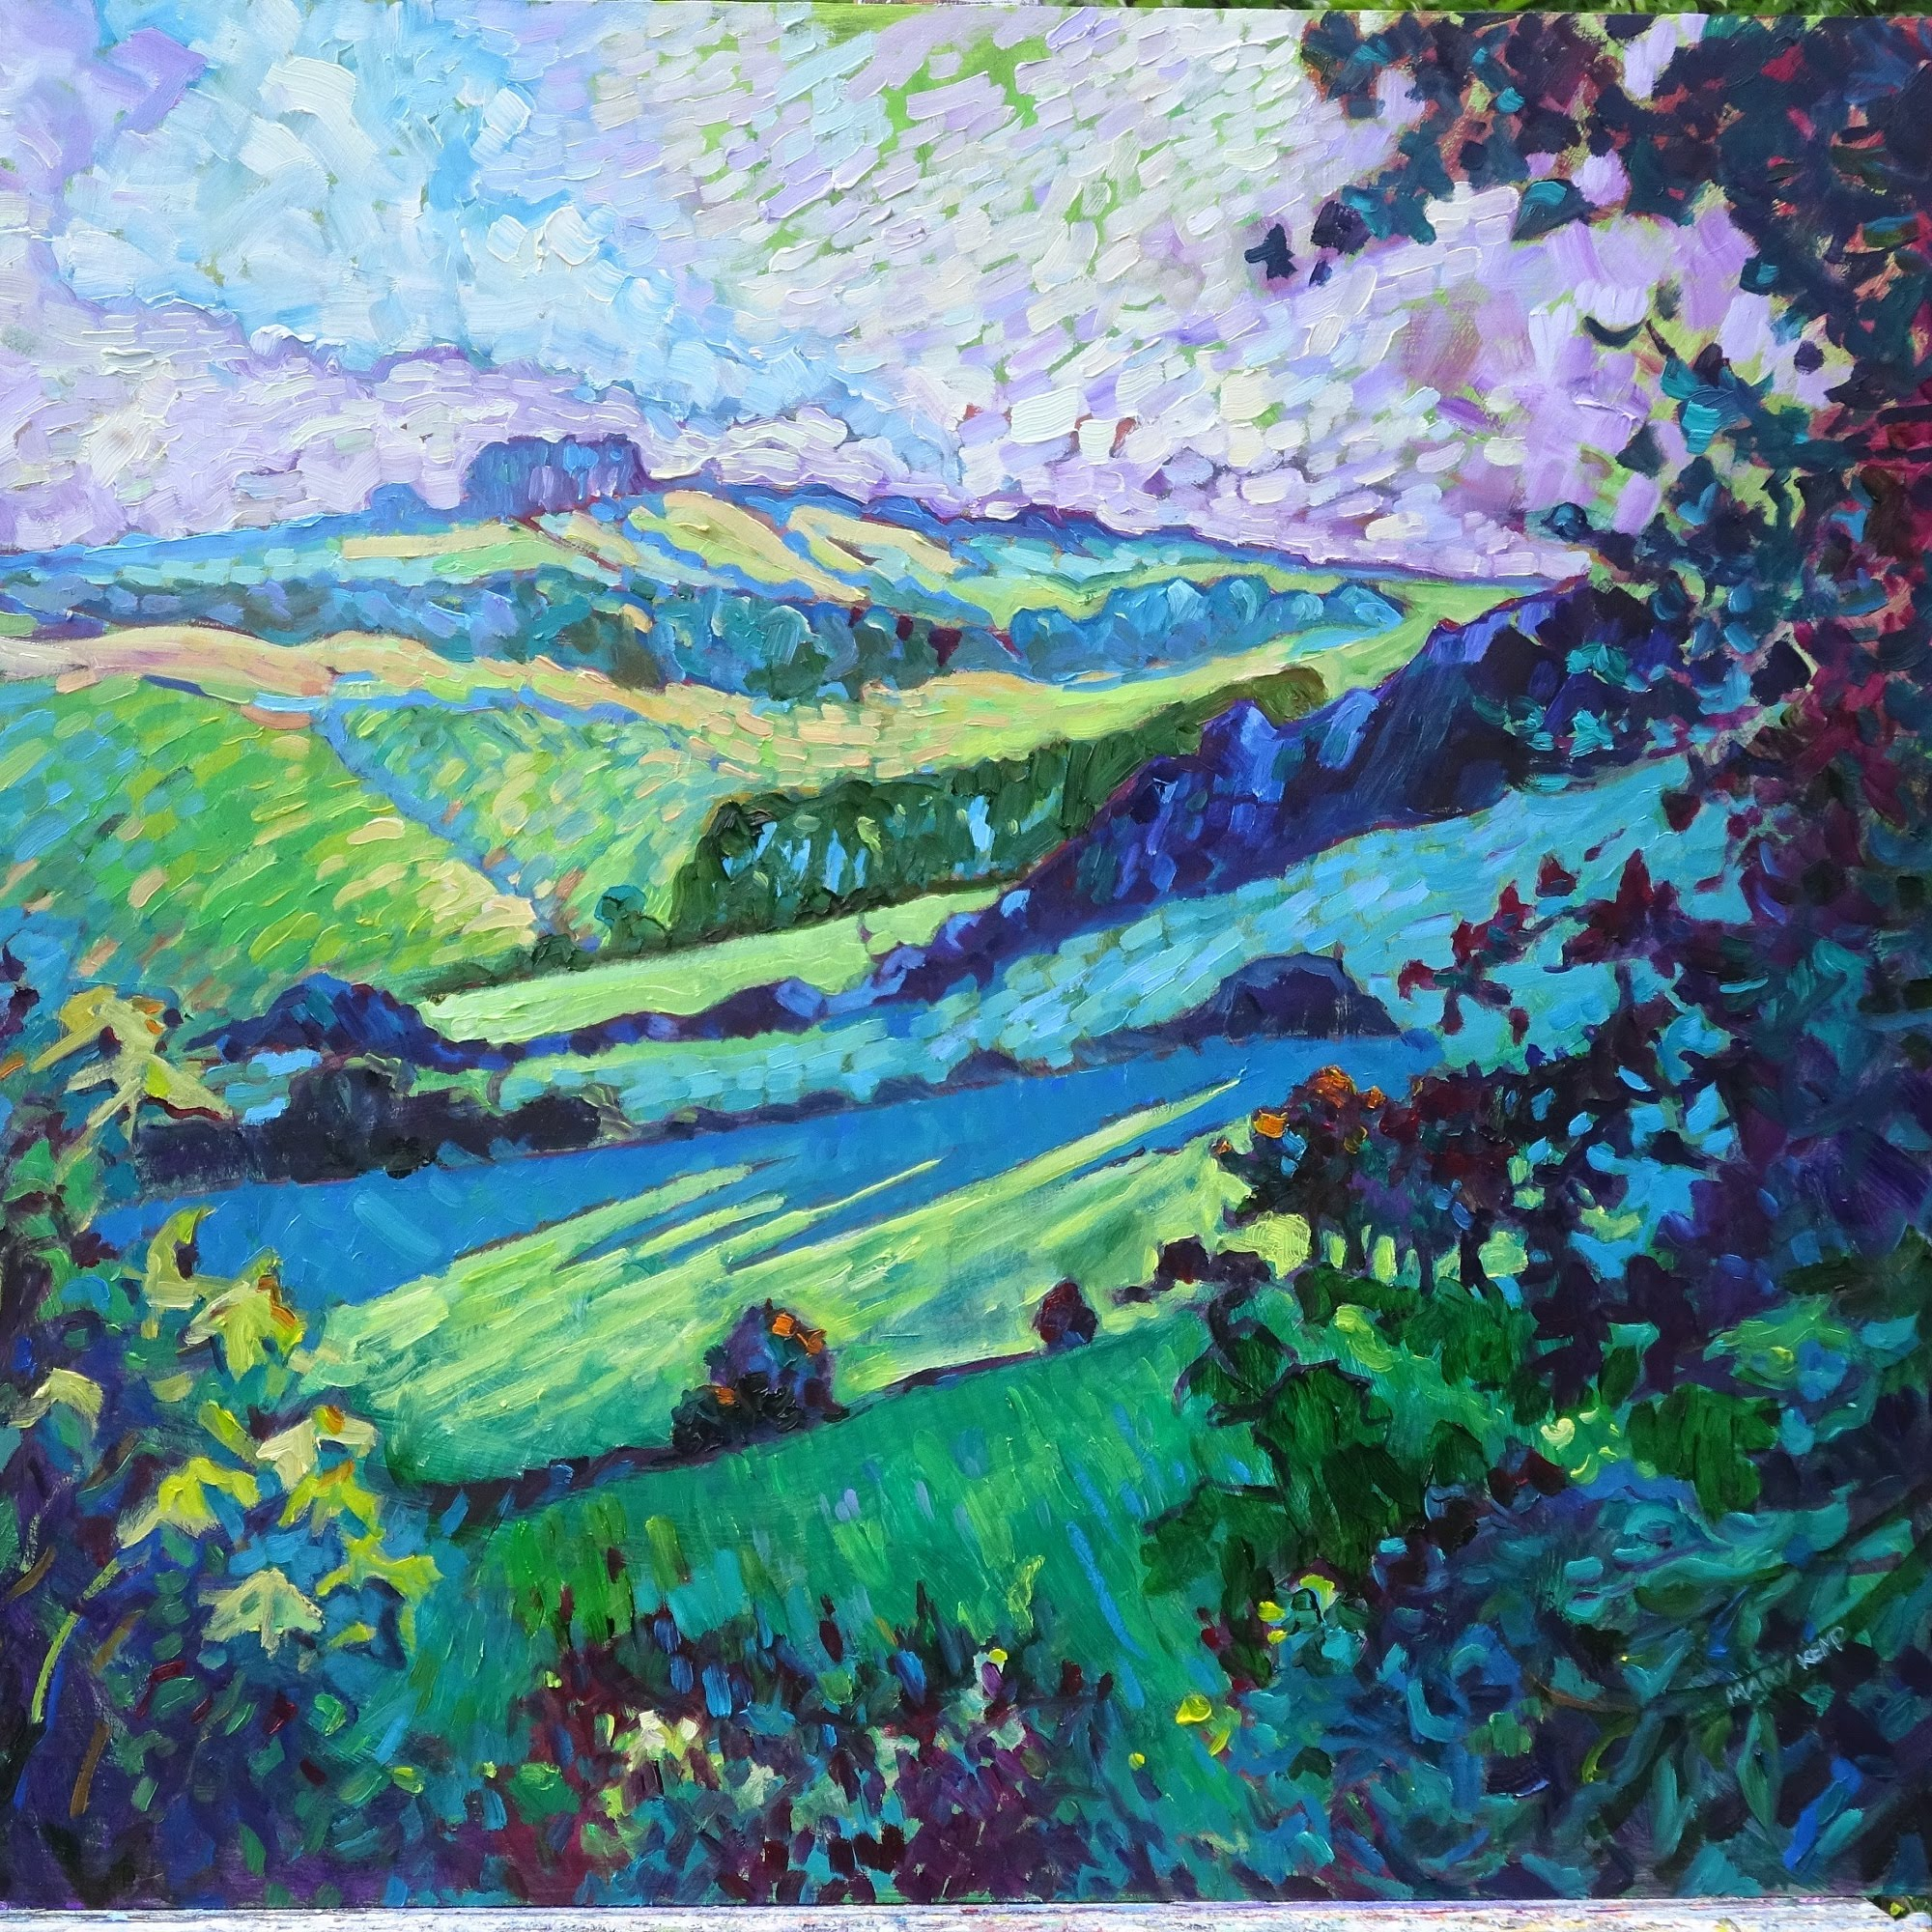 Derbyshire Hills  Oil on canvas panel  60 x 50 cm (24 x 20 inches)  £480